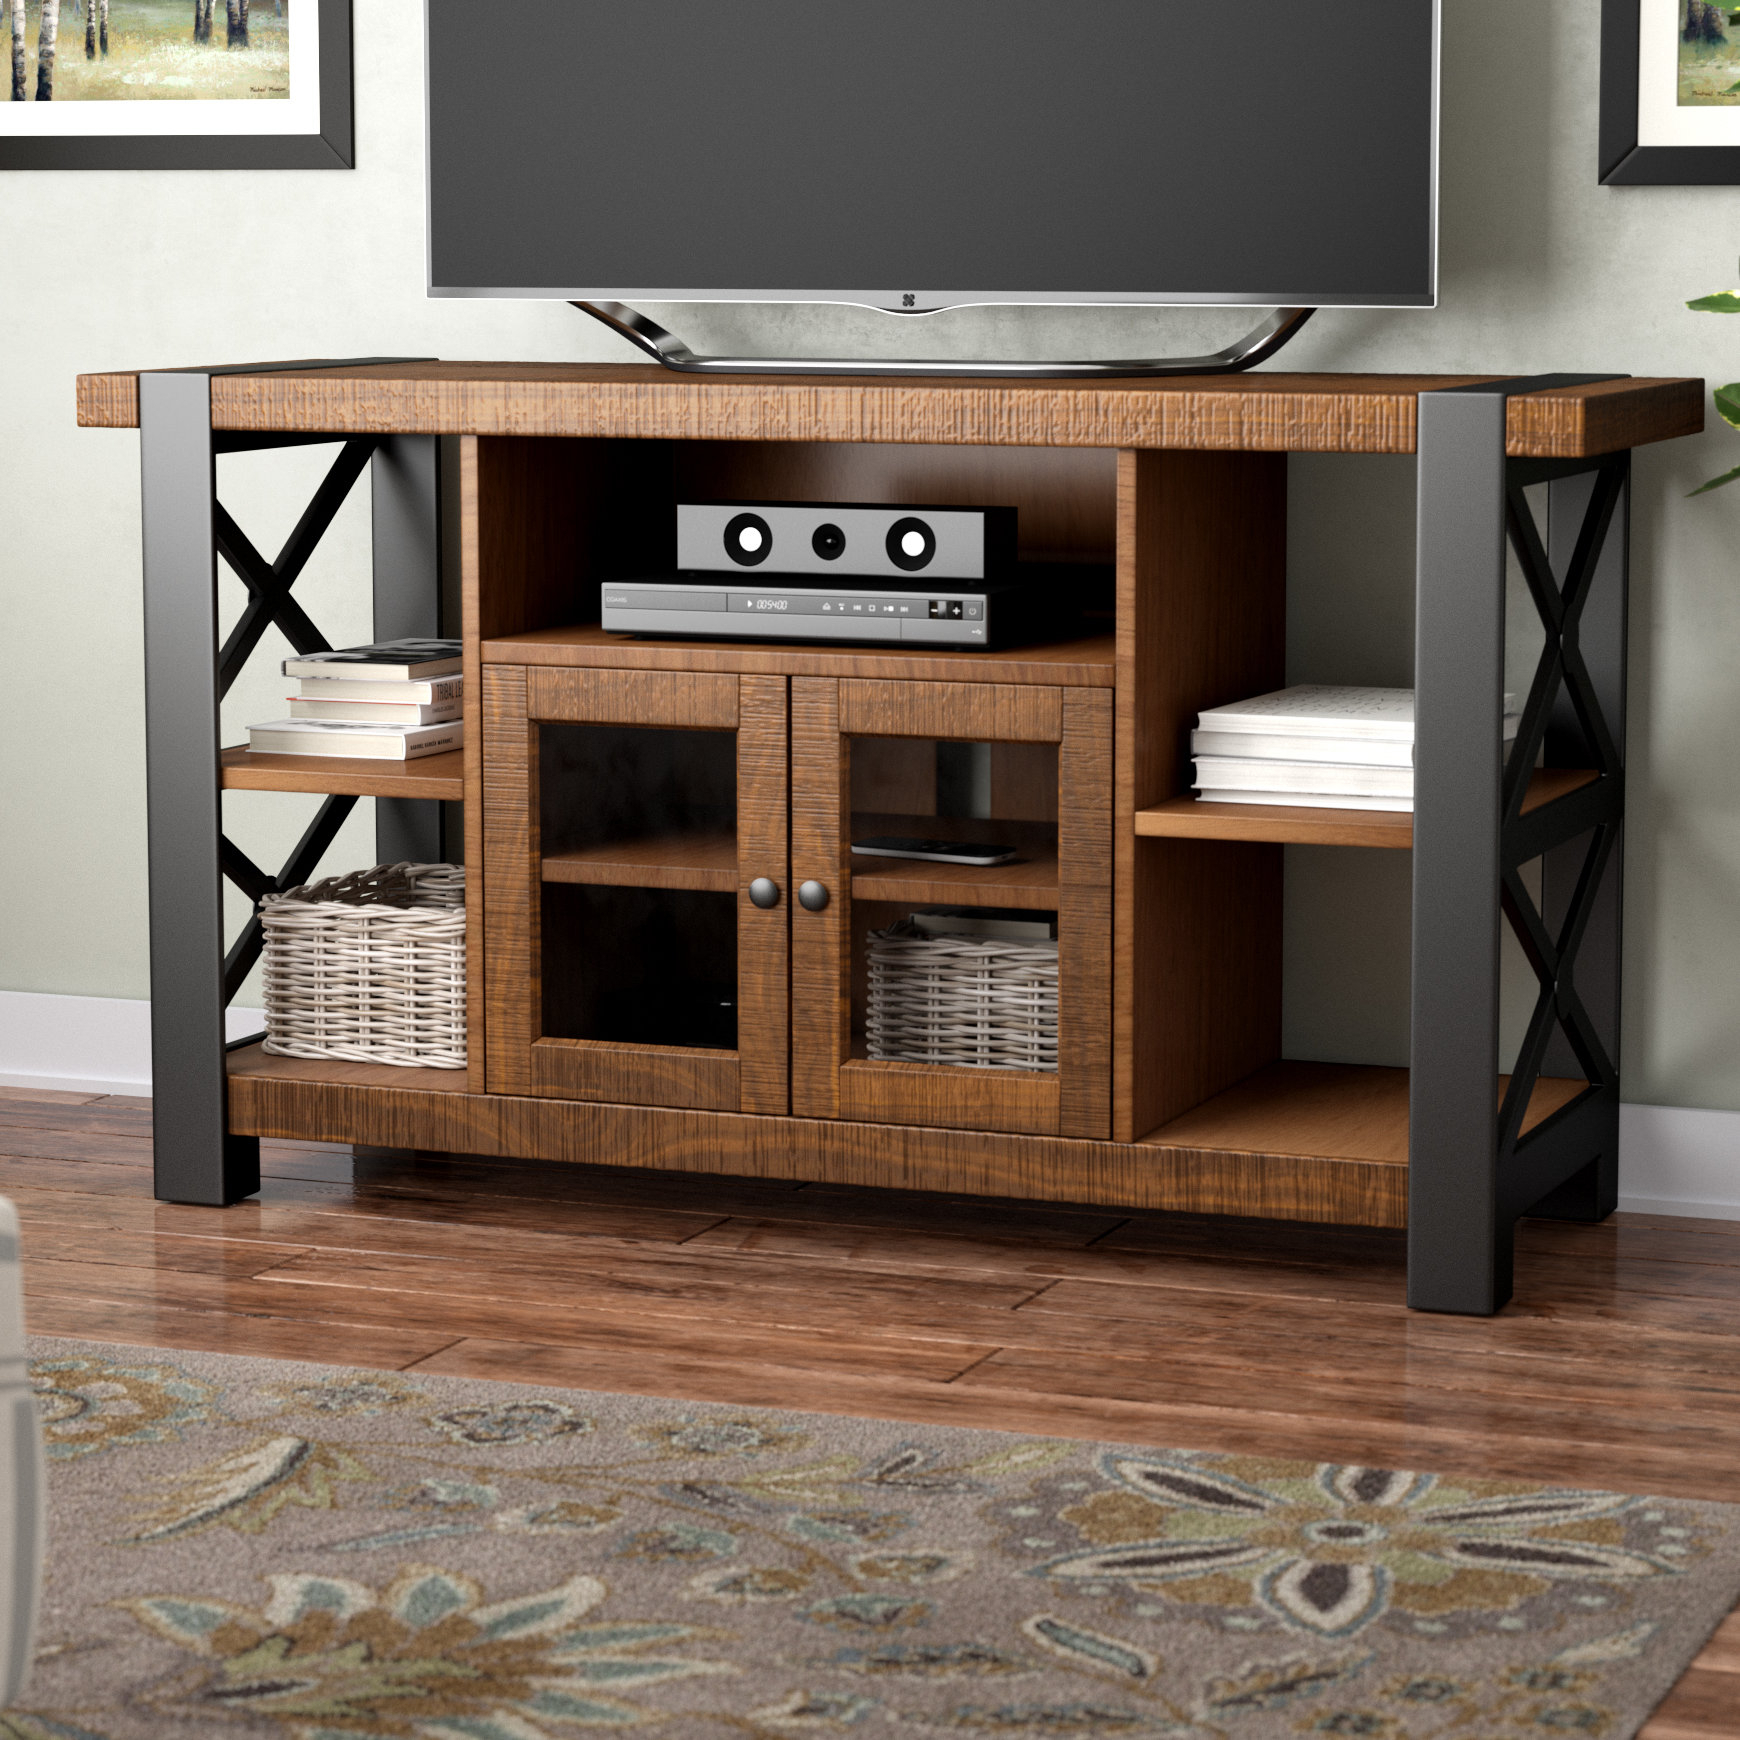 Industrial Tv Stands You'll Love | Wayfair in Walton Grey 72 Inch Tv Stands (Image 12 of 30)